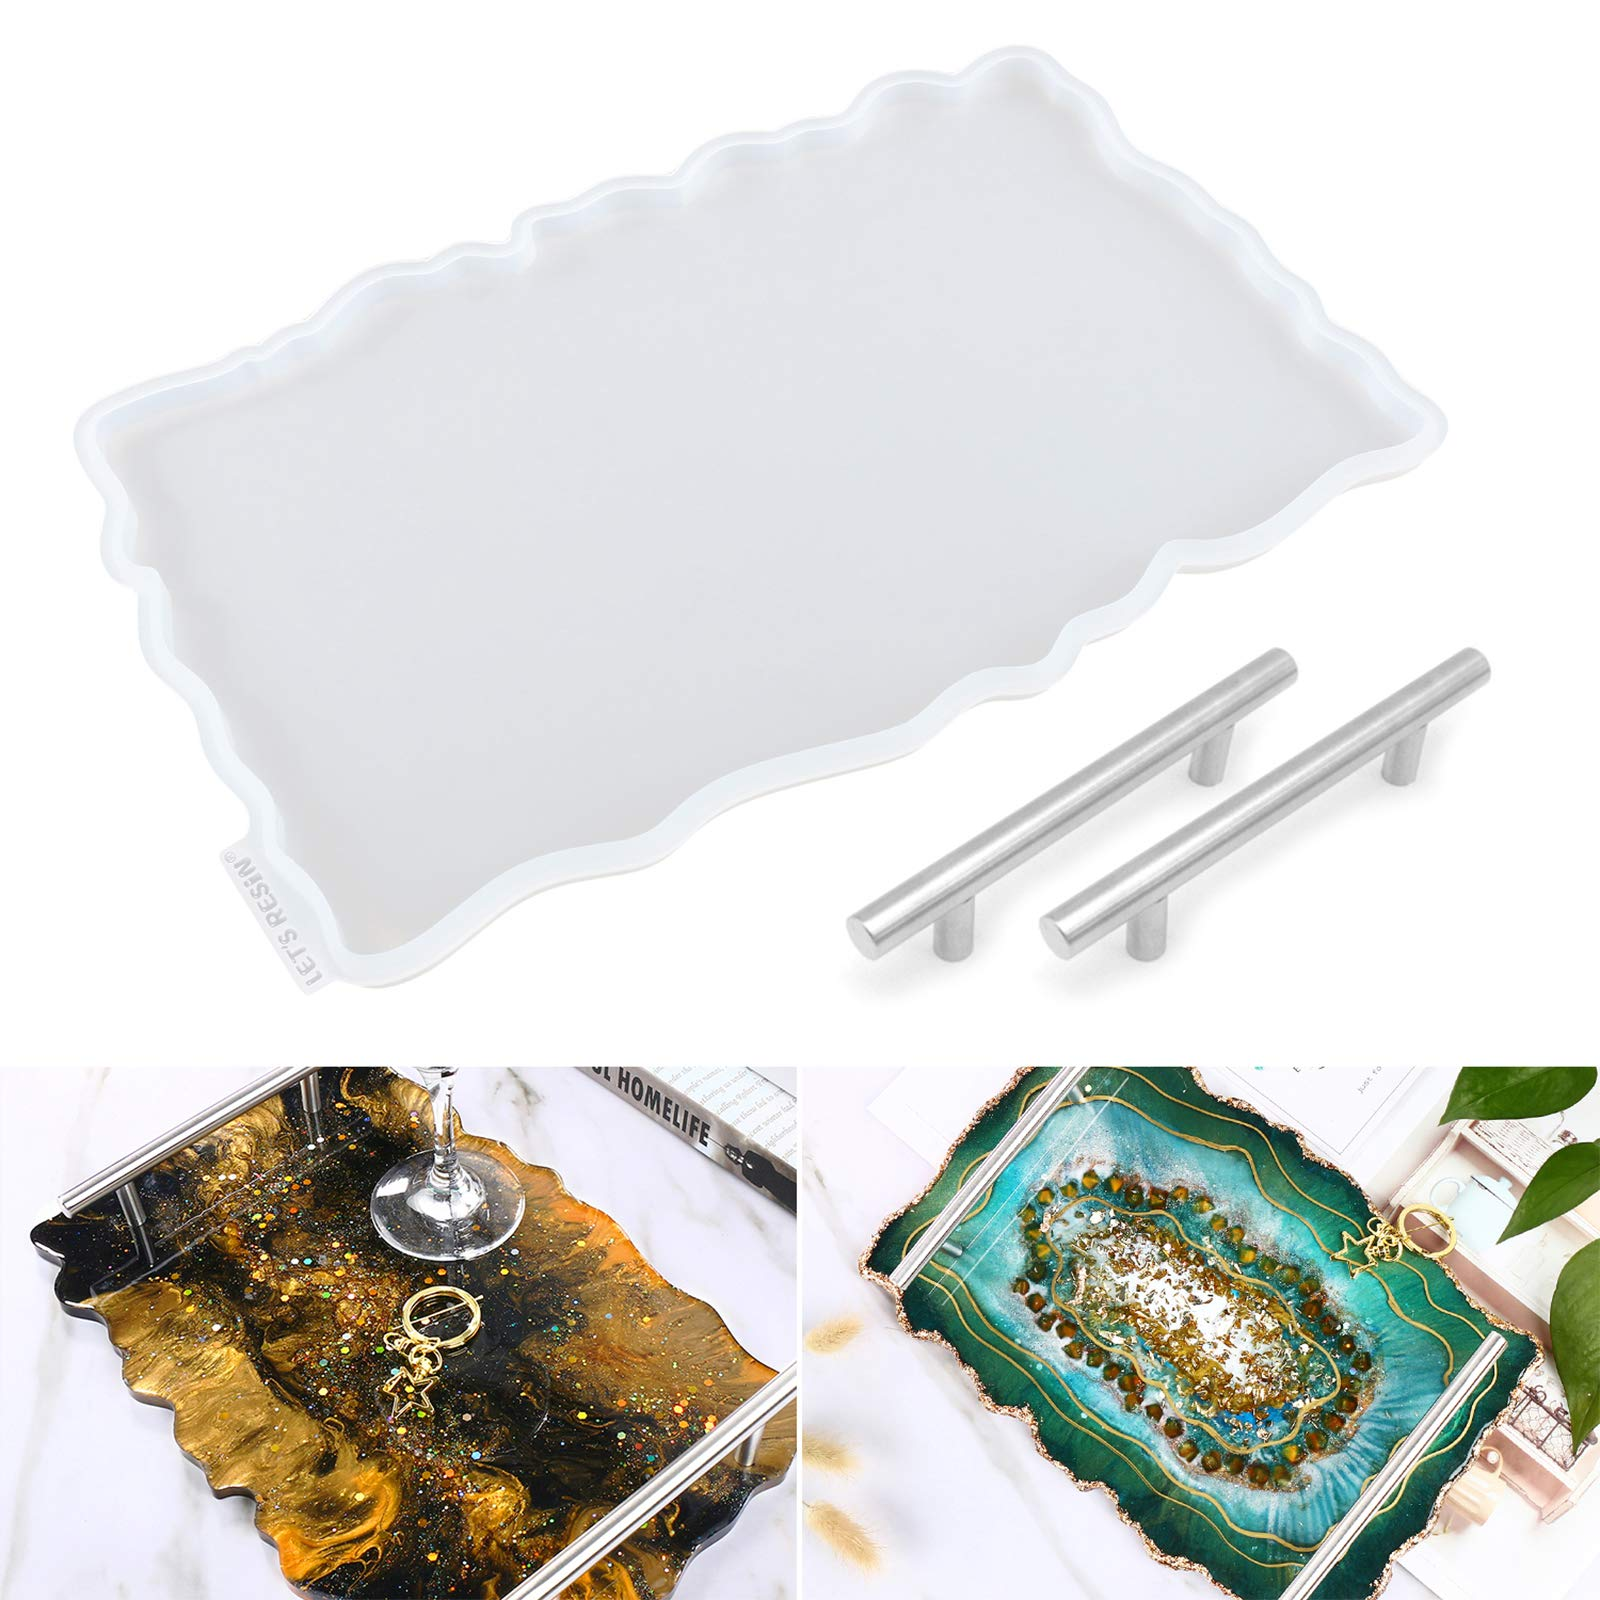 LET'S RESIN Resin Tray Molds,Geode Tray Molds for Epoxy Resin,Silicone Tray Molds with 2 Pcs Silver Handles,Large Epoxy Resin Molds for Making Faux Agate Tray,Serving Board,Serving Tray